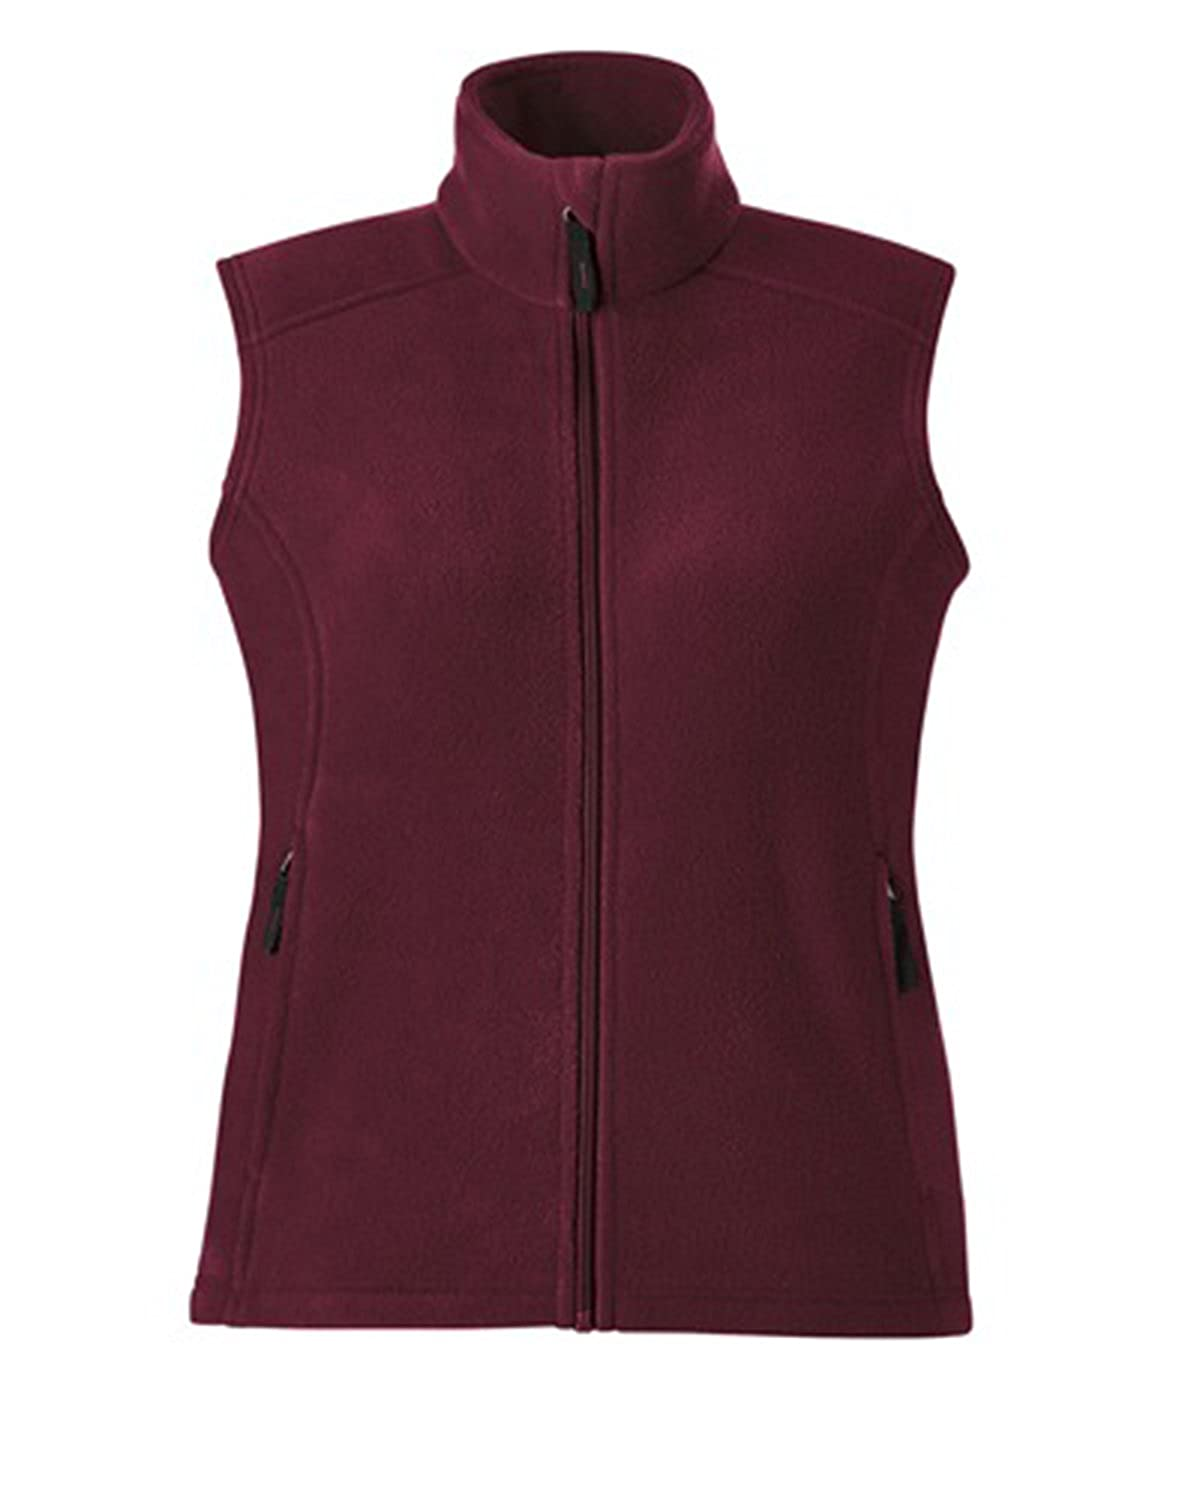 North End Journey Womens Burgundy Sleeveless Fleece Jacket Vest ...